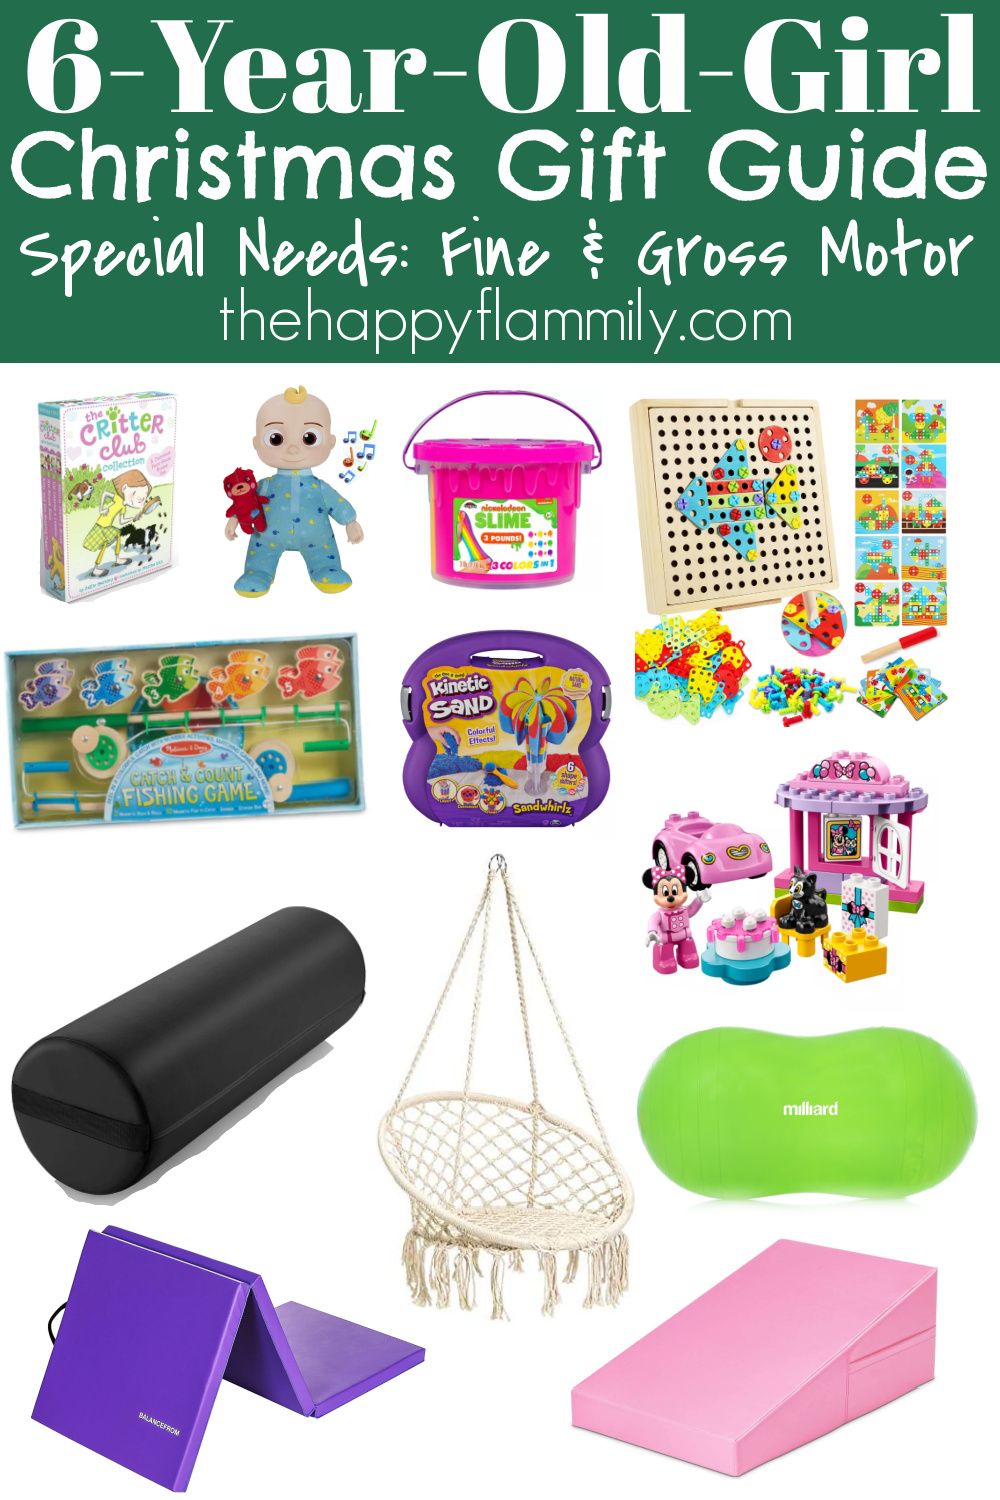 Good gifts for special needs child. Special needs child gift ideas. Gifts for special needs teenager. Birthday ideas for special needs child. Best toys for special needs child. Special needs toys for cerebral palsy. Gift ideas for child in wheelchair. Gifts for mentally handicapped adults. Special needs gift guide. #giftguide #holiday #christmas #specialneeds #adaptive #disability #acessibility